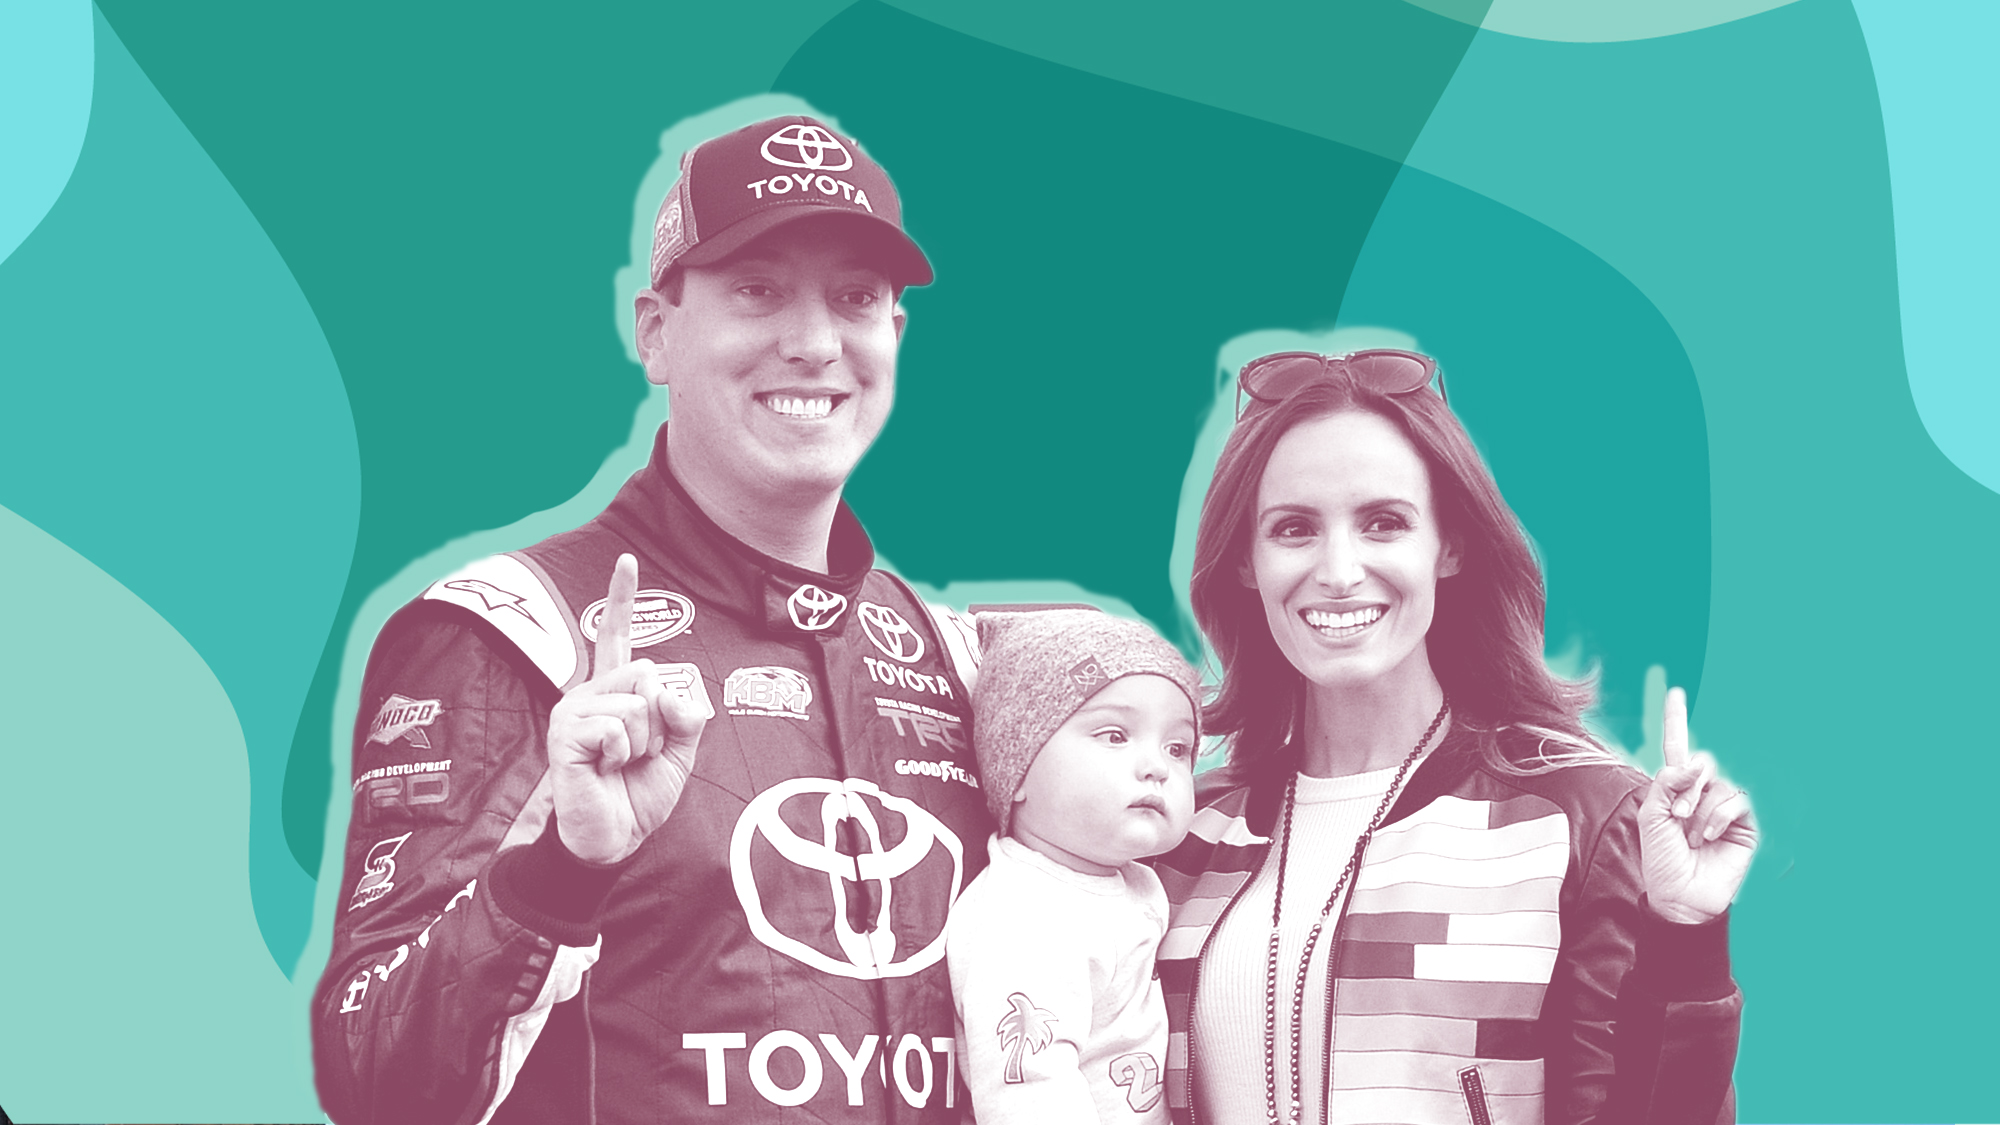 MARTINSVILLE, VA - APRIL 02: Kyle Busch, driver of the #18 Toyota Toyota, poses with his son Brexton and his wife Samantha in Victory Lane after winning the NASCAR Camping World Truck Series Alpha Energy Solutions 250 at Martinsville Speedway on April 2, 2016 in Martinsville, Virginia. (Photo by Drew Hallowell/Getty Images)